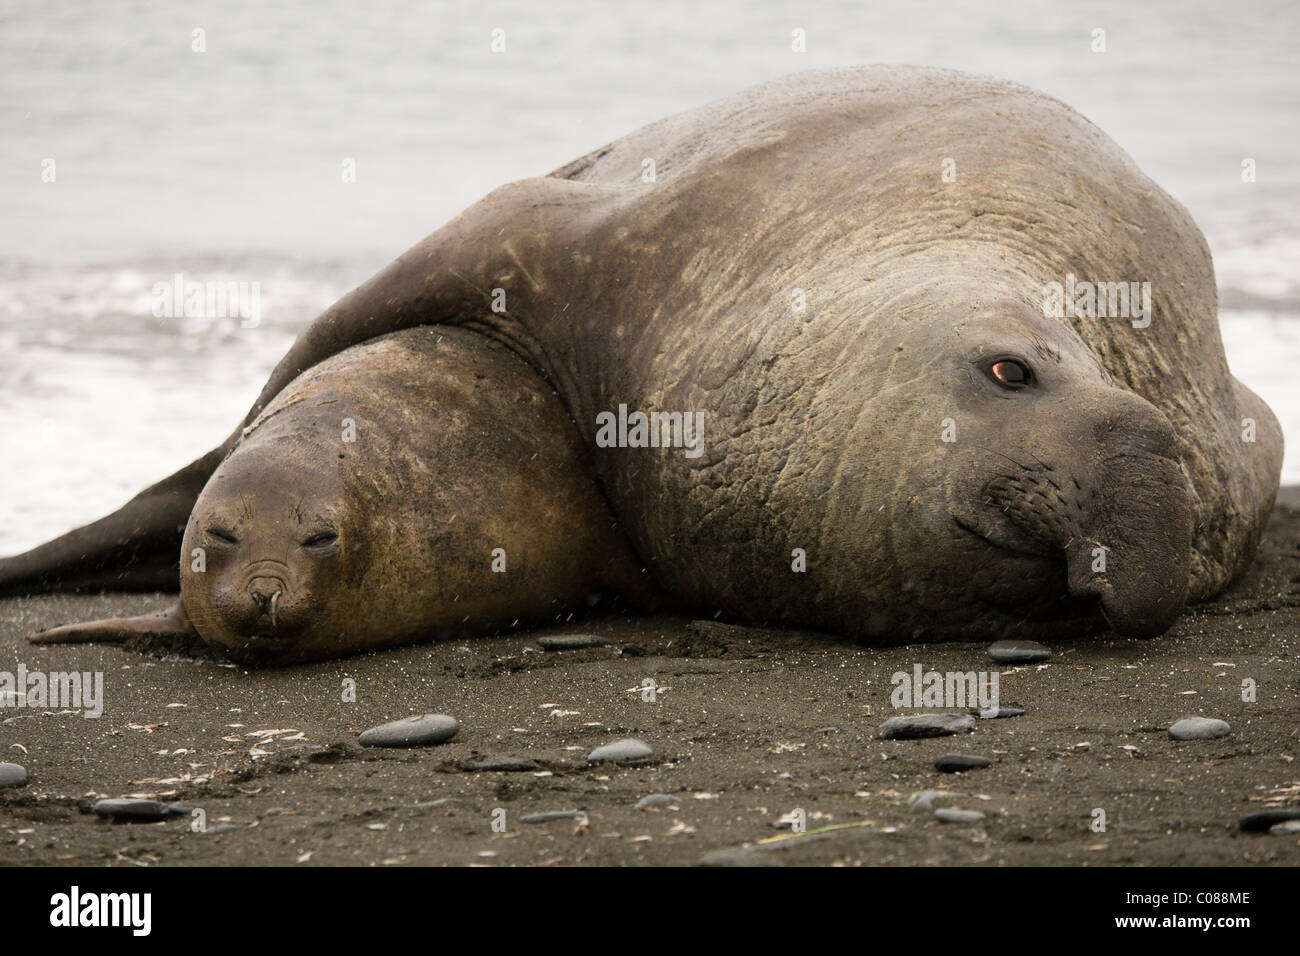 Southern Elephant Seals mating, Gold Harbor, South Georgia Island, - Stock Image